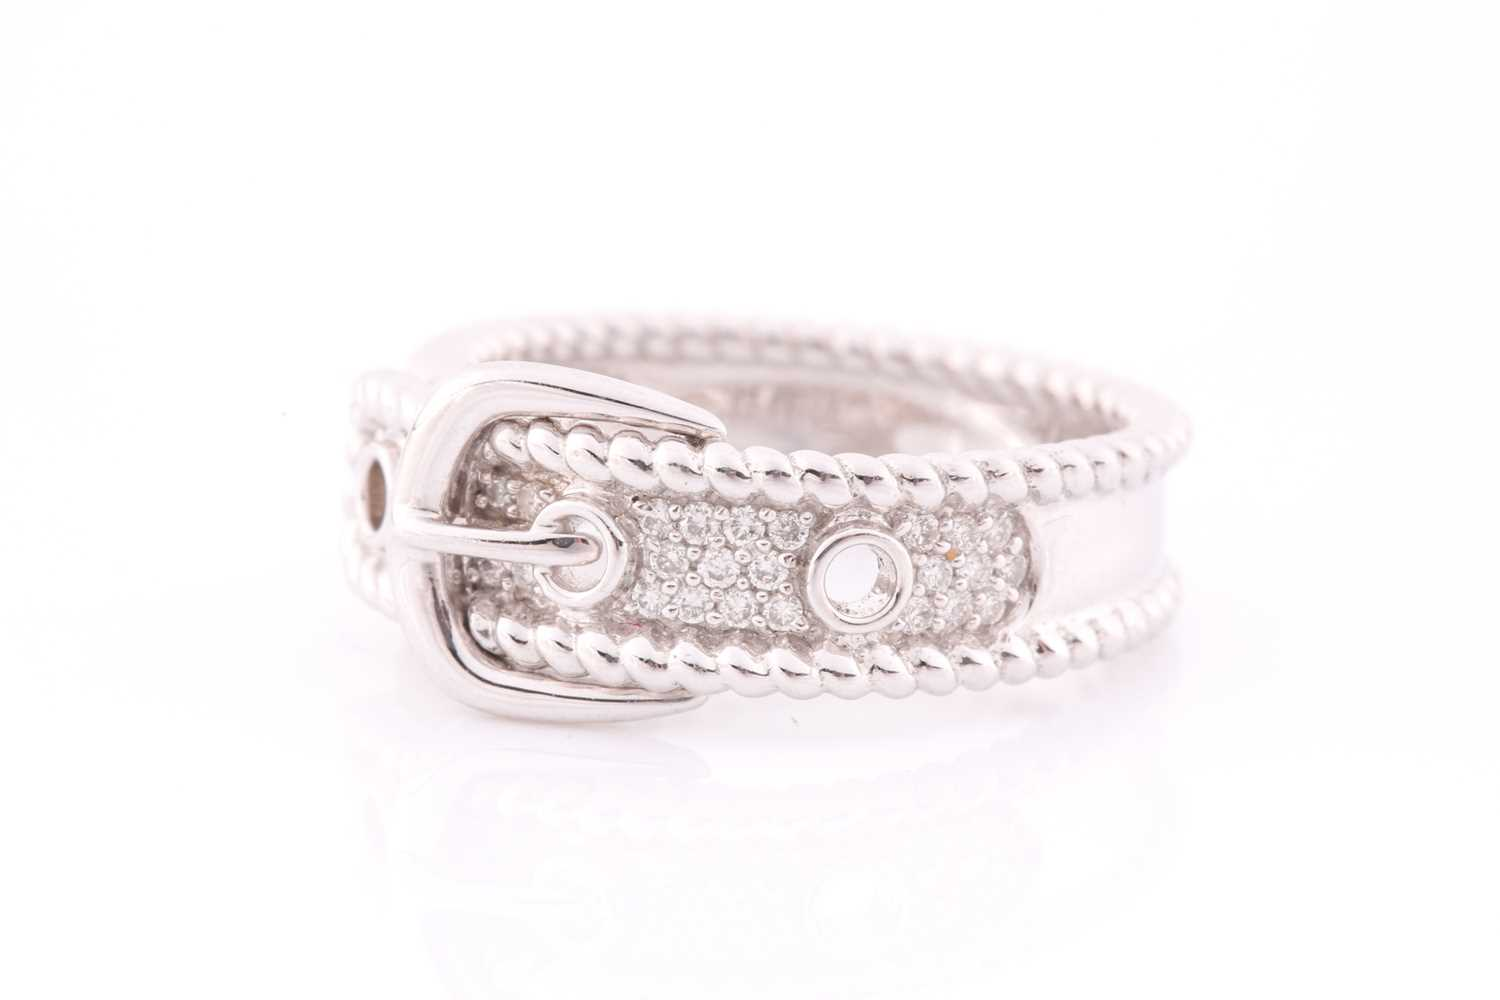 An 18ct white gold and diamond buckle ring, the mount pave-set with round brilliant-cut diamond - Image 2 of 5